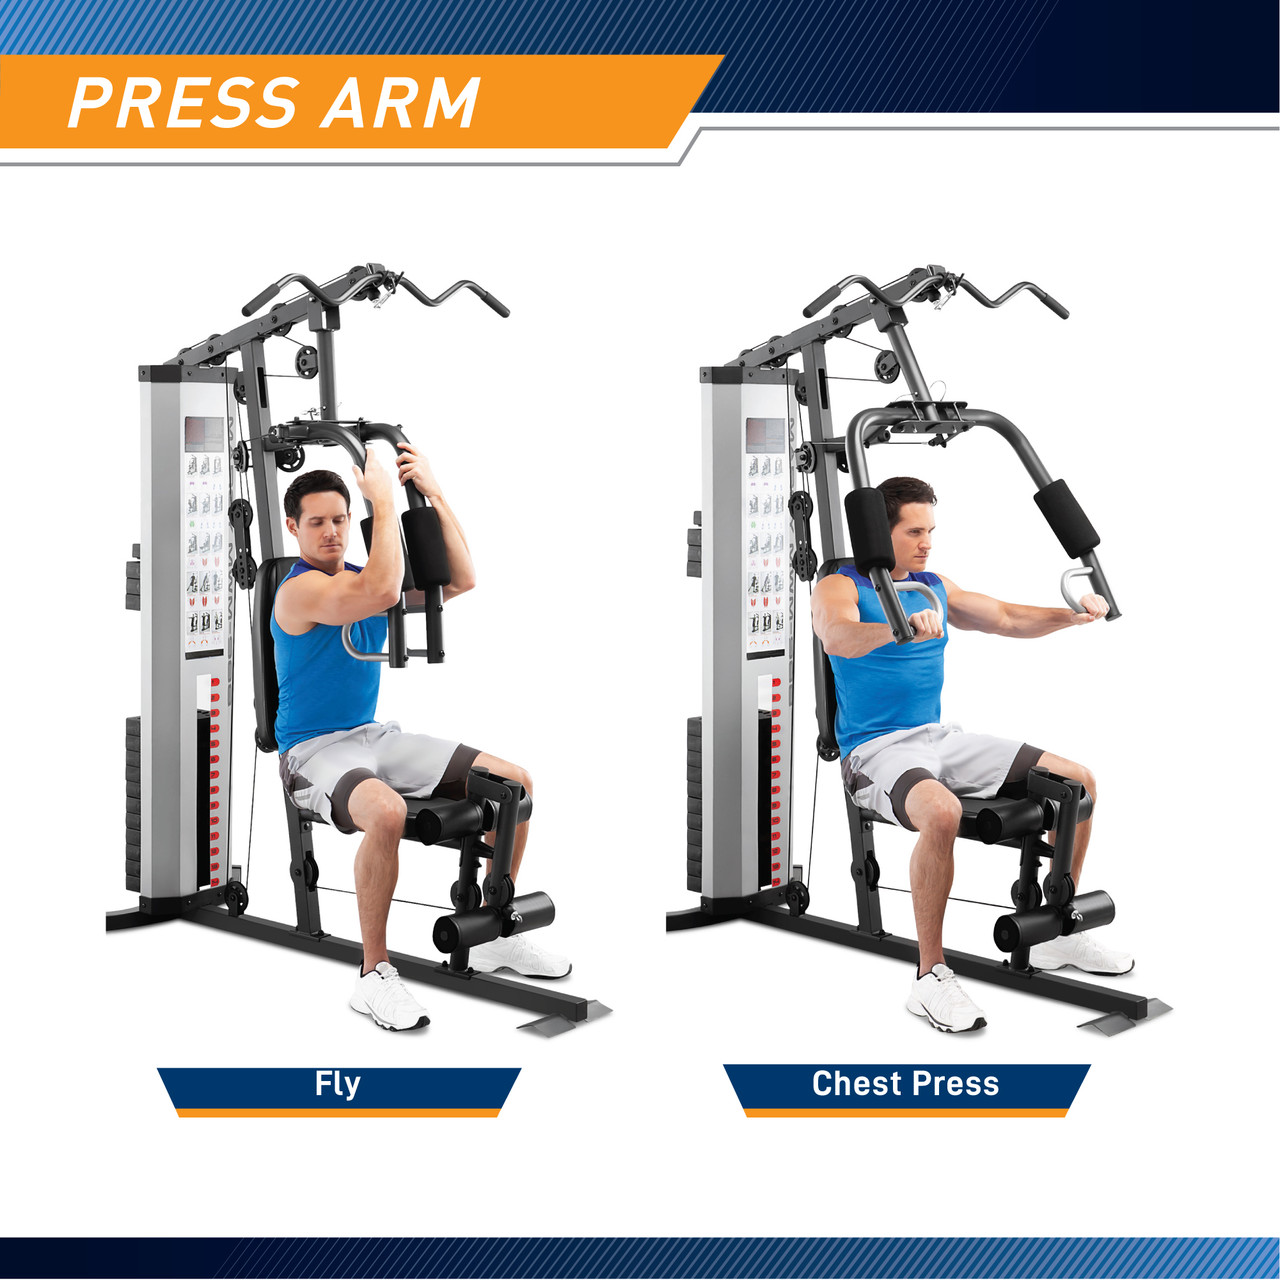 The Marcy 150 Lb Weight Stack Home Gym - MWM-988 has a durable cable system